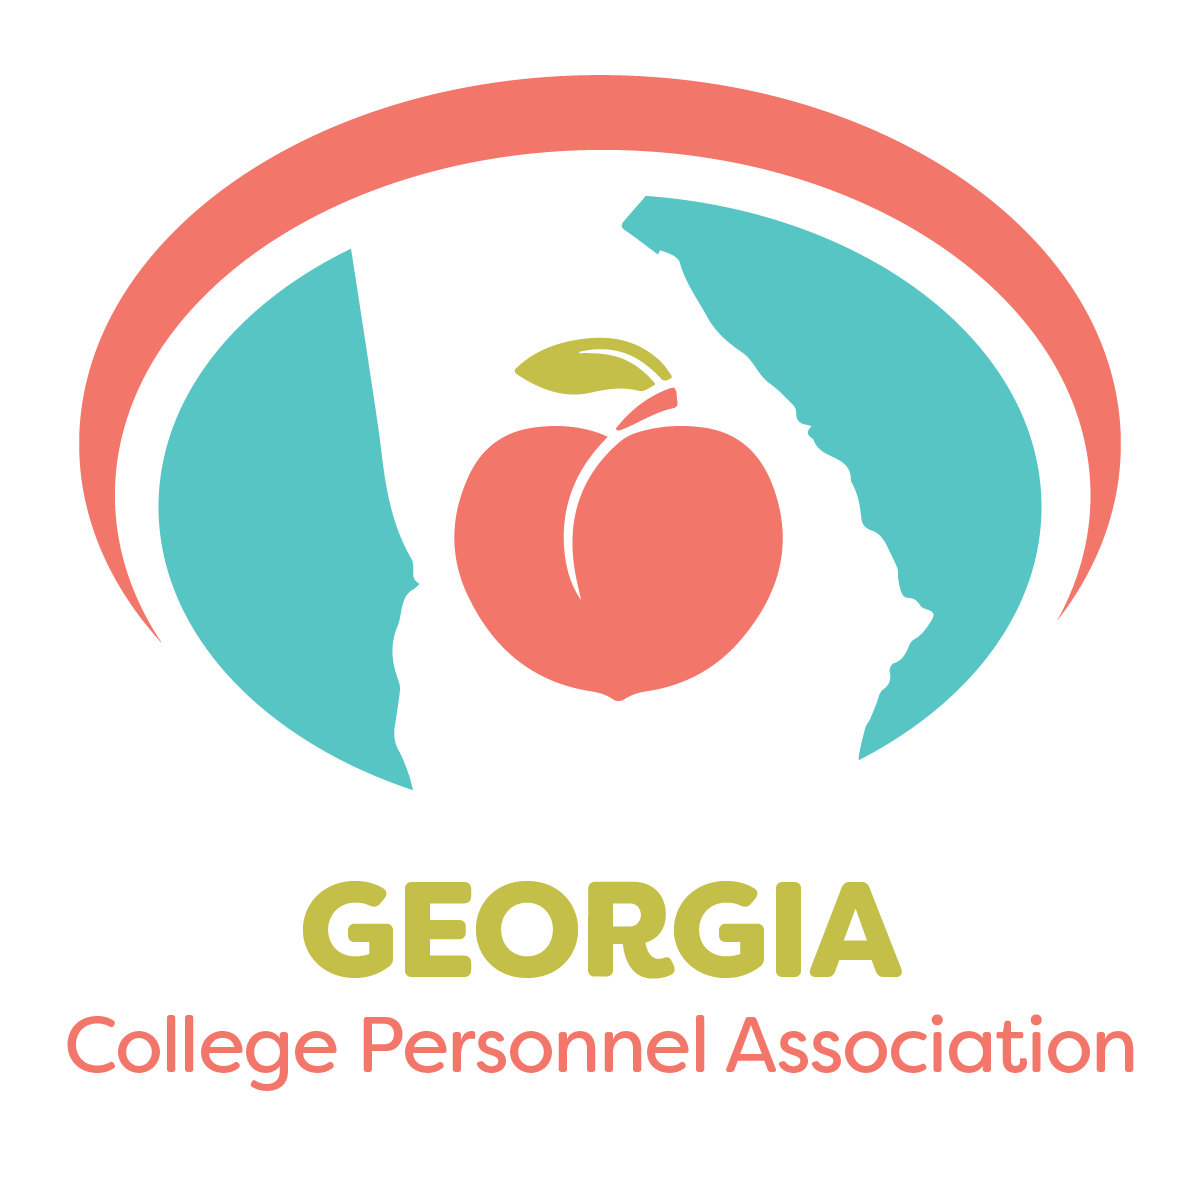 Georgia College Personnel Association logo featuring a peach inside of the state of georgia